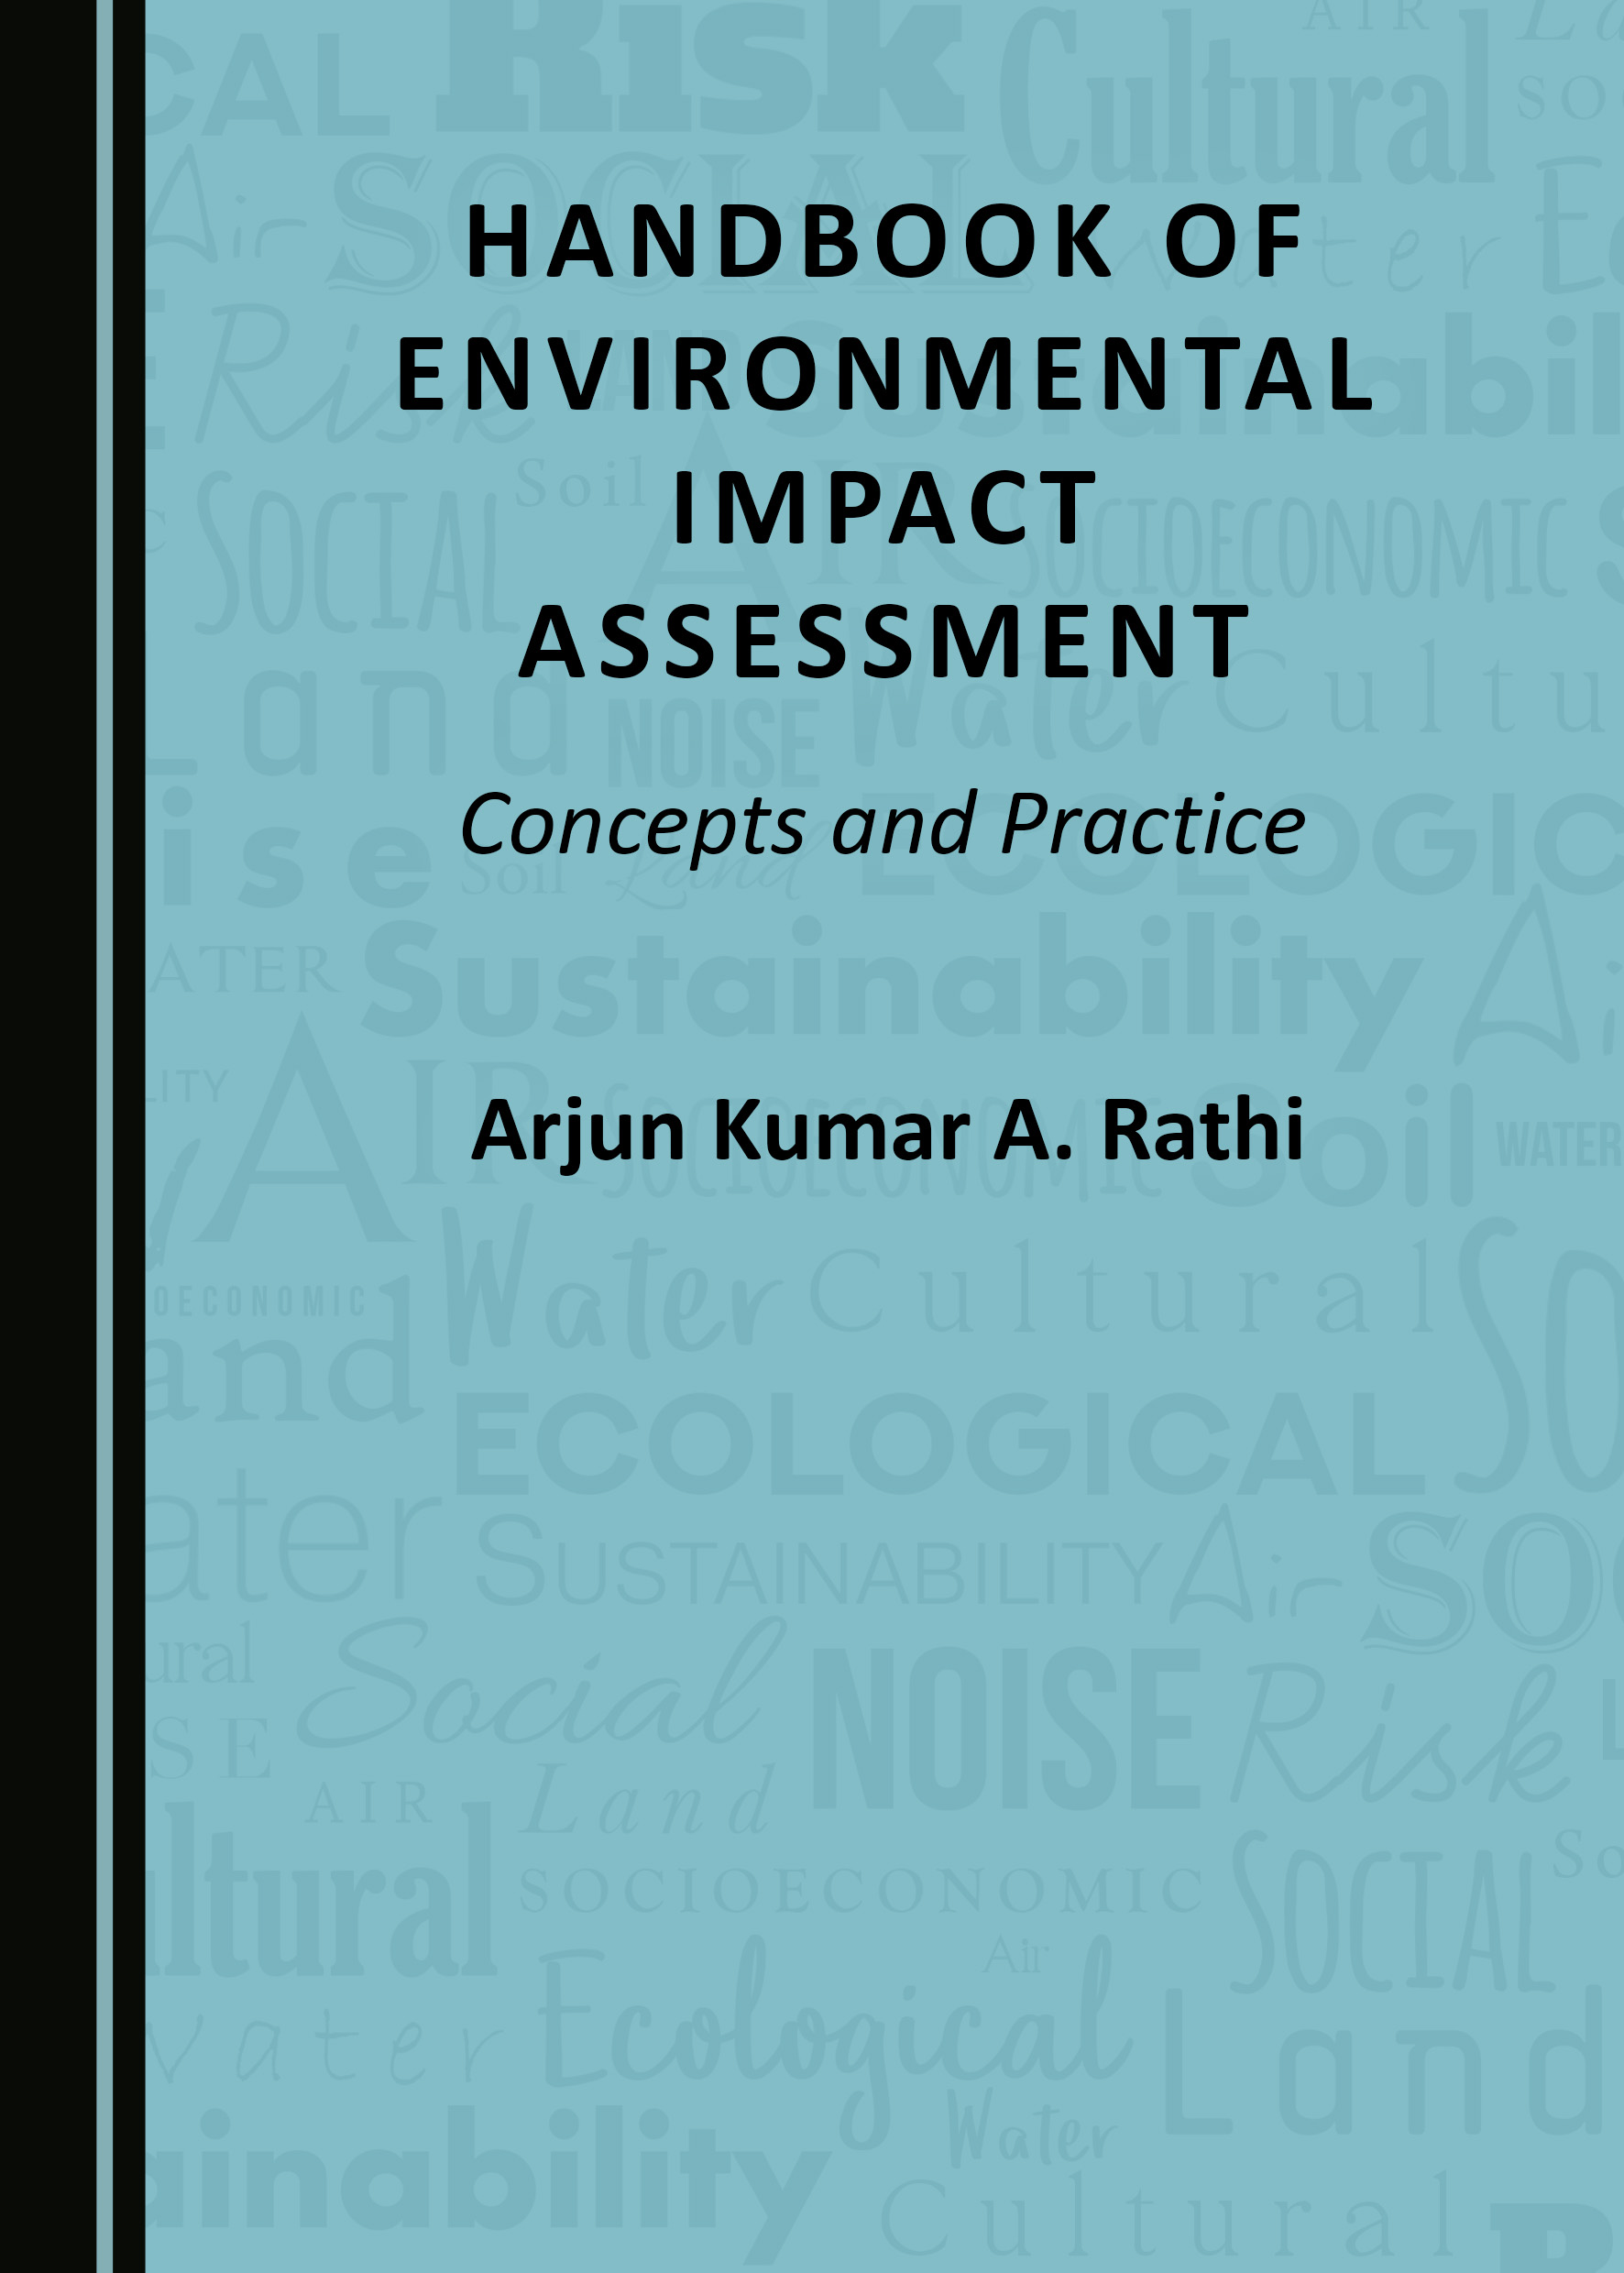 Handbook of Environmental Impact Assessment: Concepts and Practice